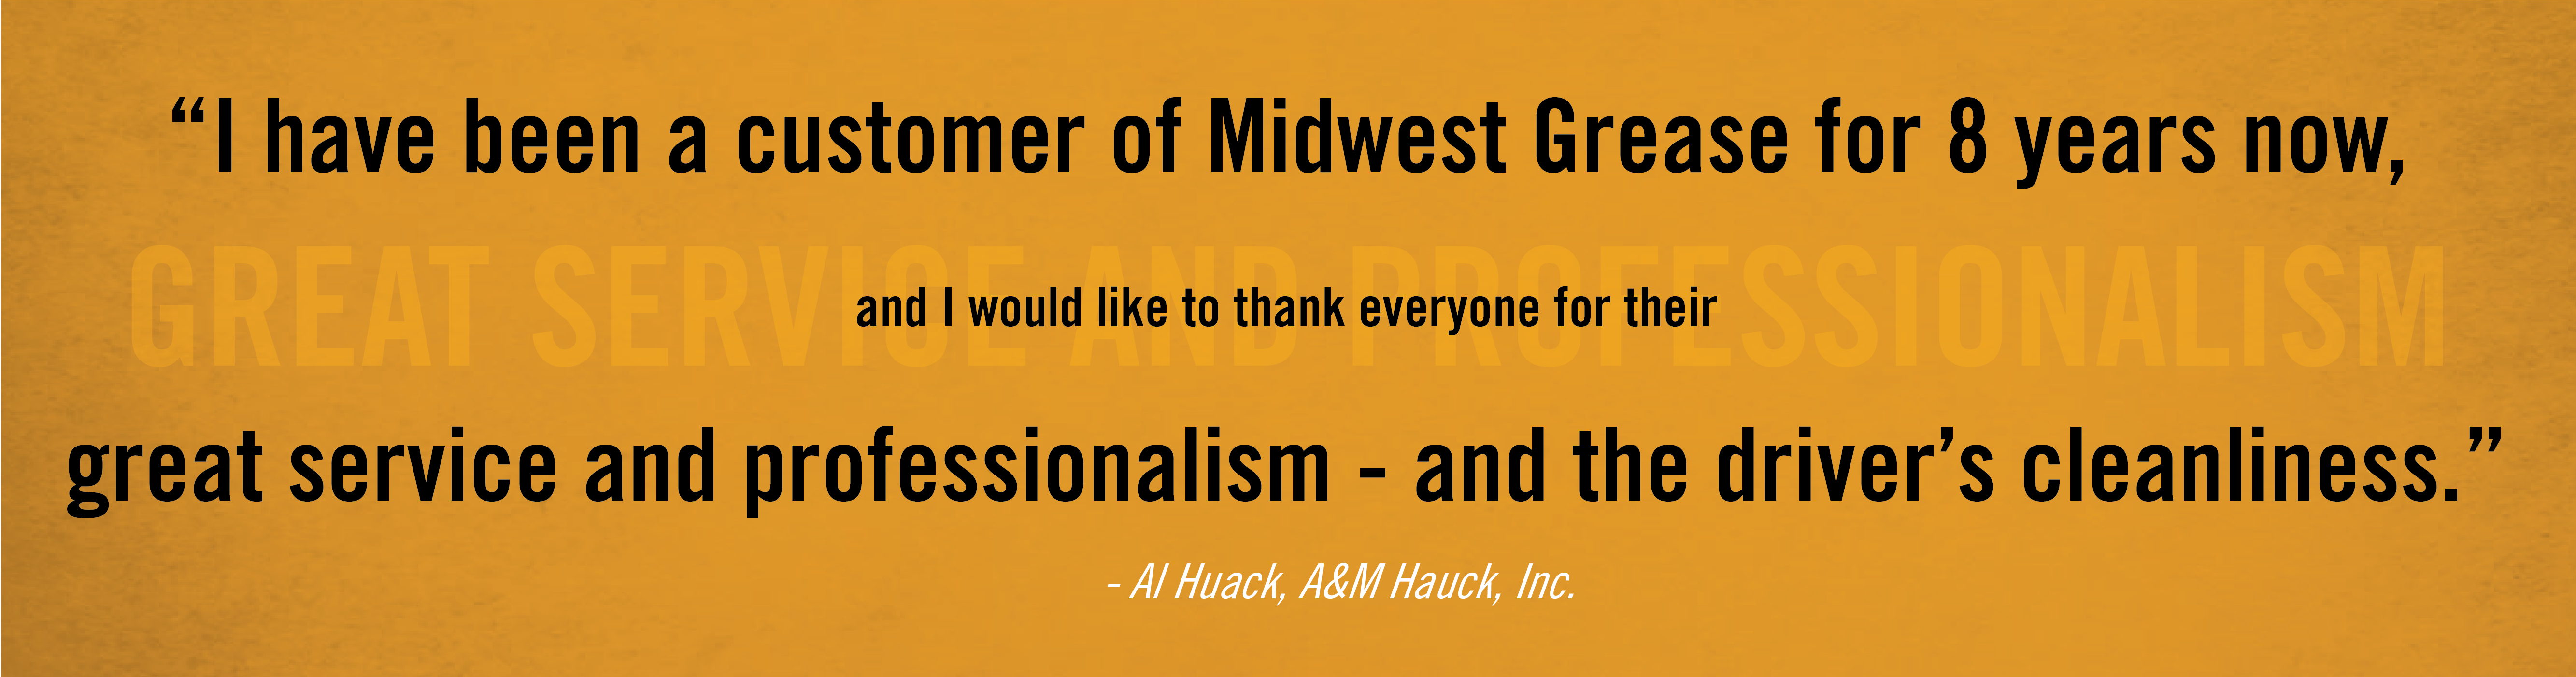 I have been a customer of Midwest Grease for 8 years now, and I would like to thank everyone for their great service and professionalism - and the driver's cleanliness. - Al Huack, A&M Hauck, Inc.